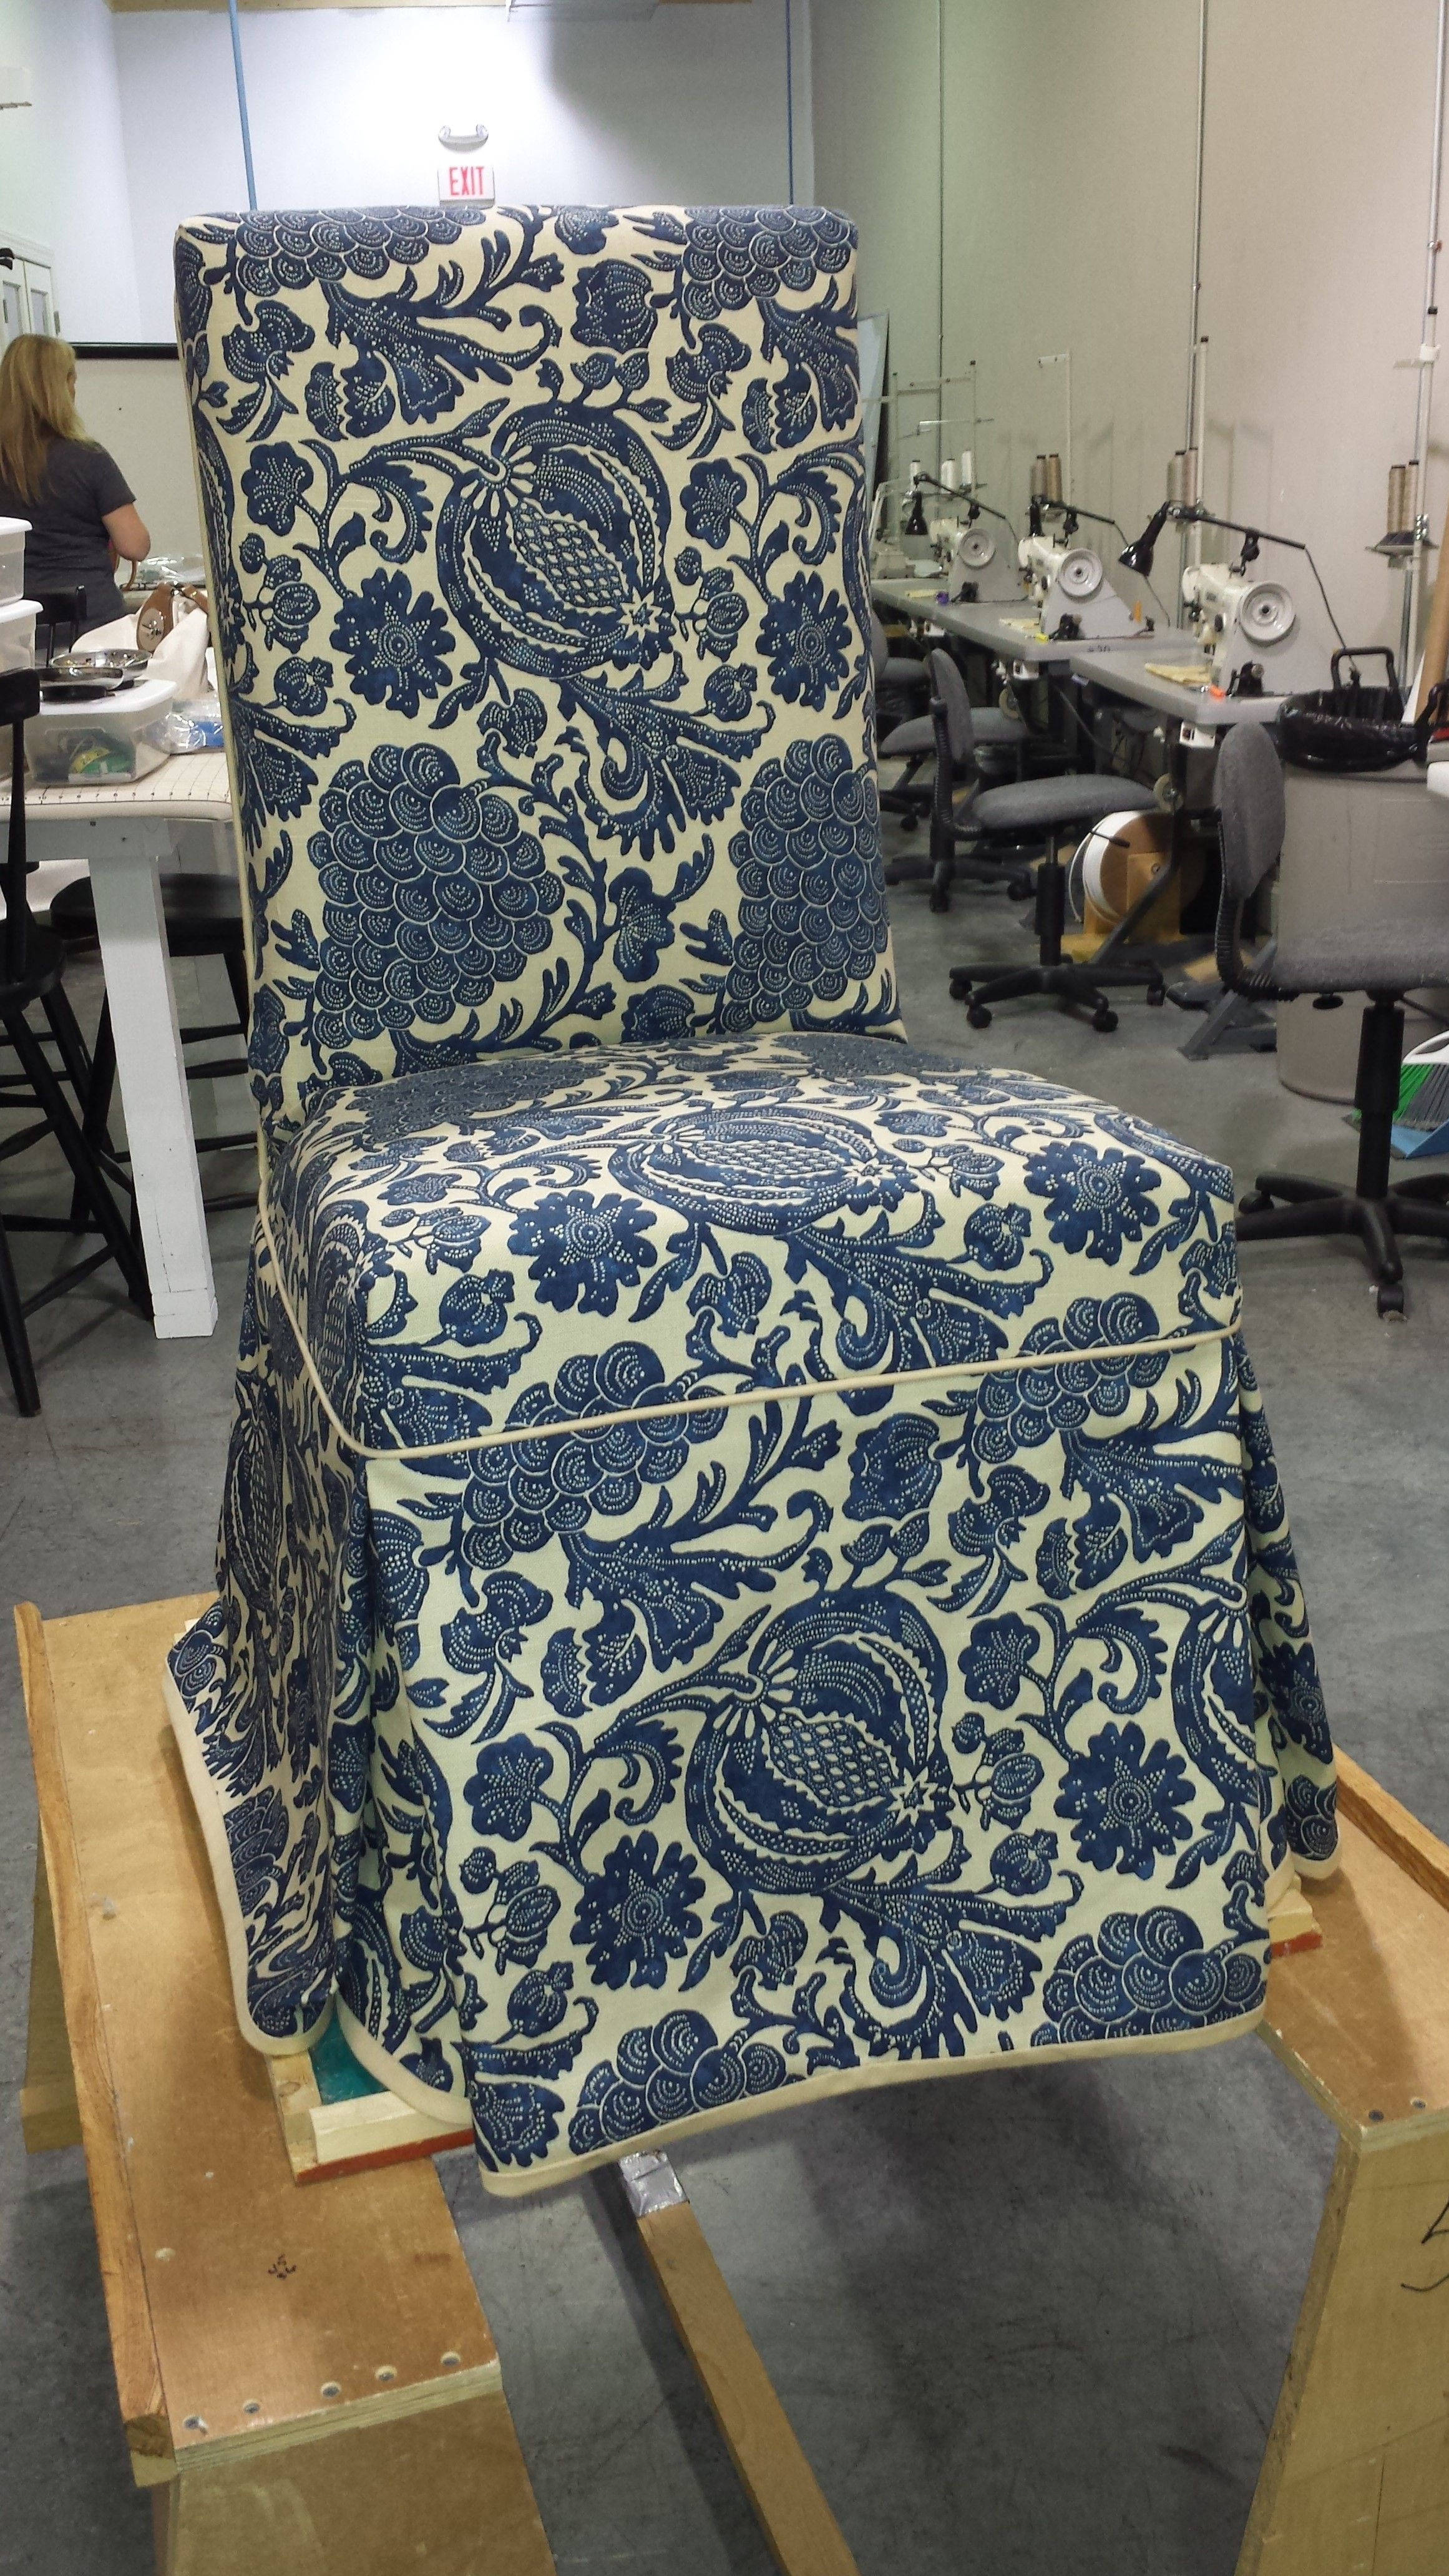 custom parsons chair slipcover. Slipcovers for chairs